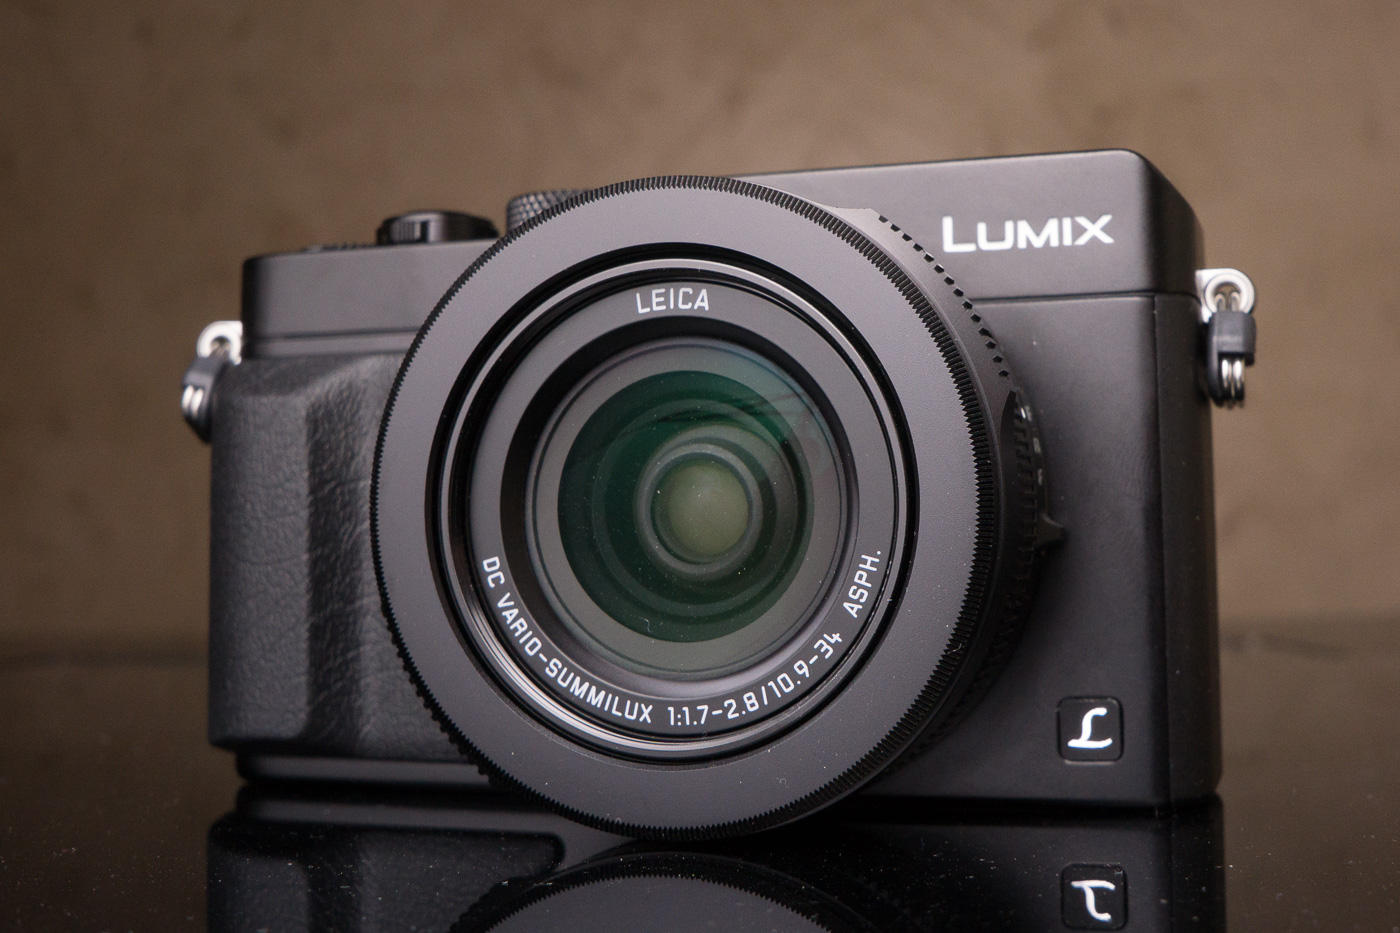 JPY 56603 or $558.67 Panasonic DMC-LX100 4K Digital Camera with Leica DC Lens